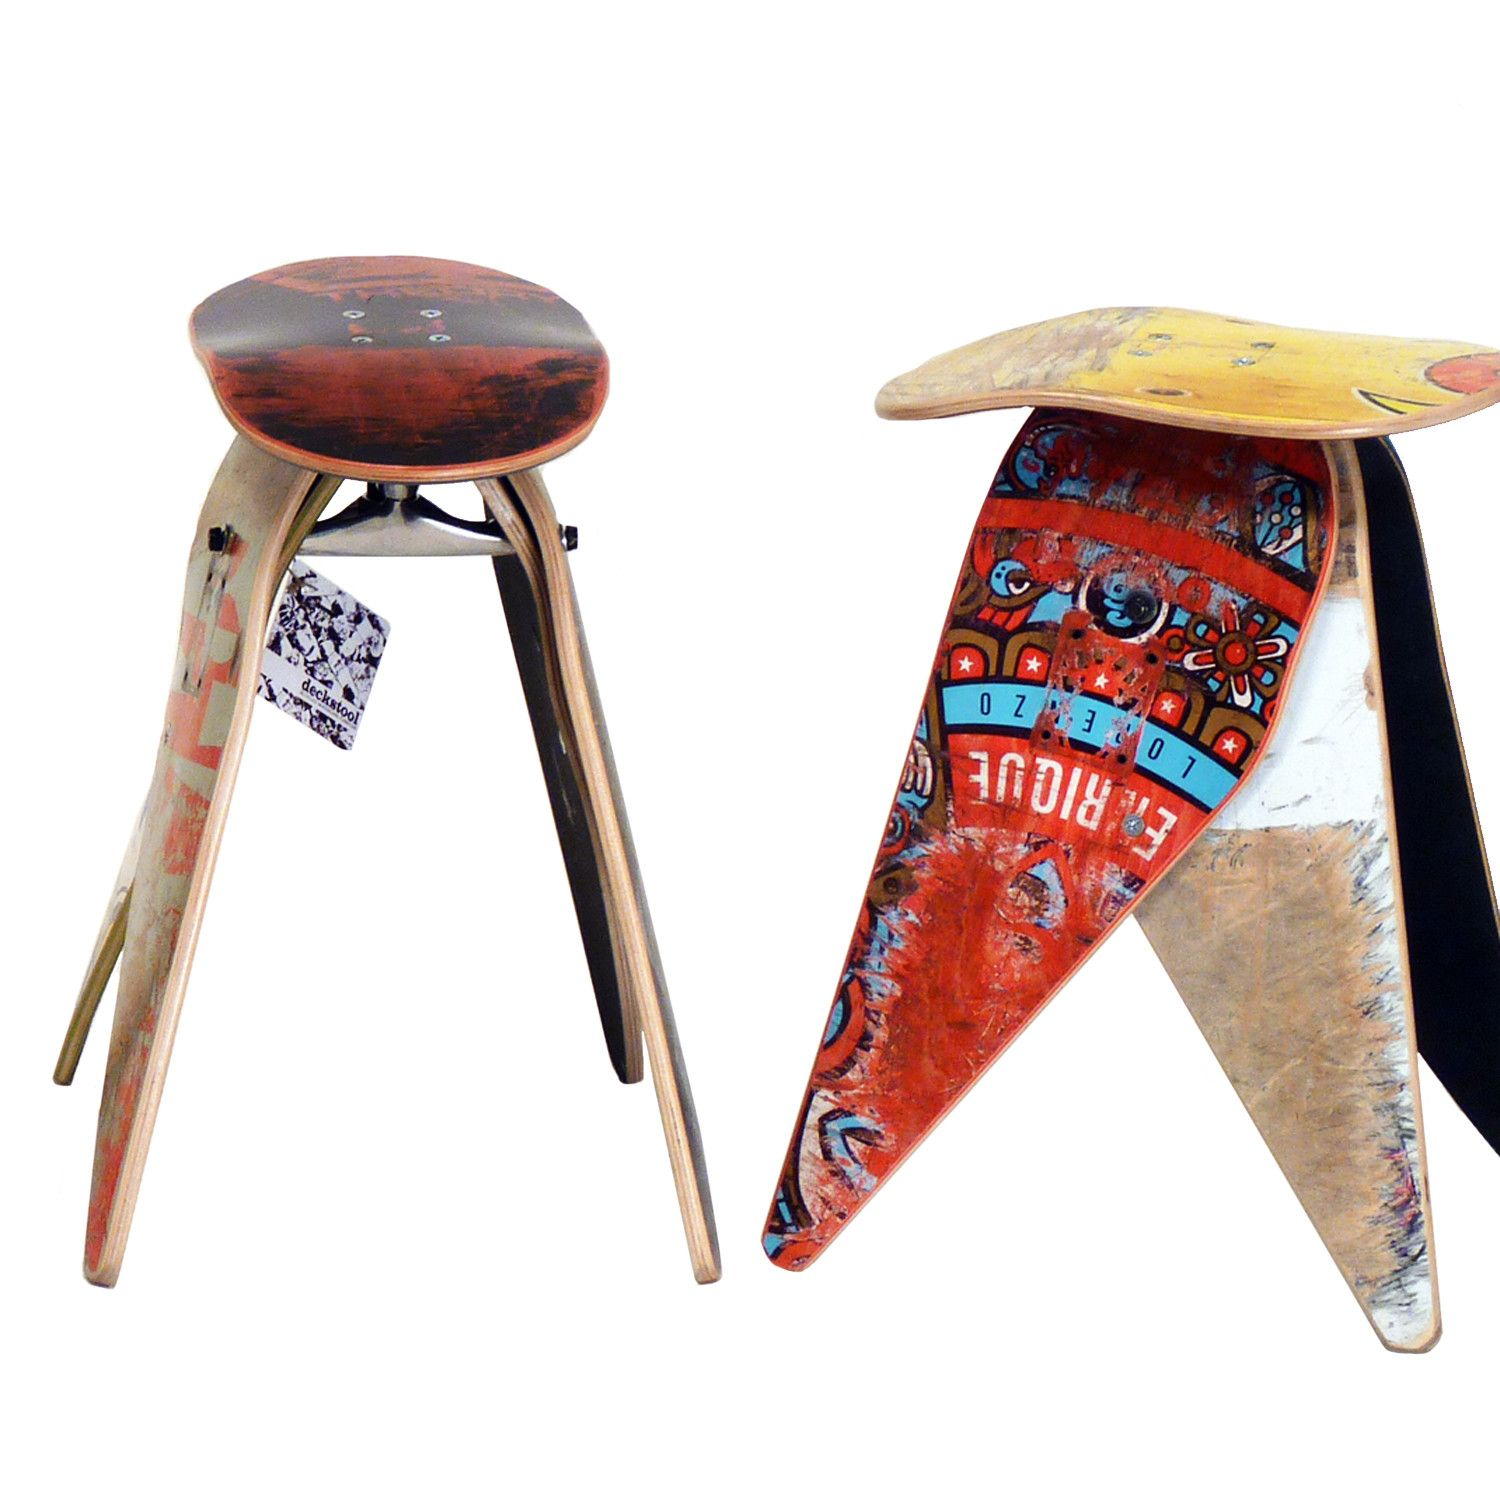 Diy Skateboard Design: Very Cool Stools Made From Trashed Skateboards / Great Way